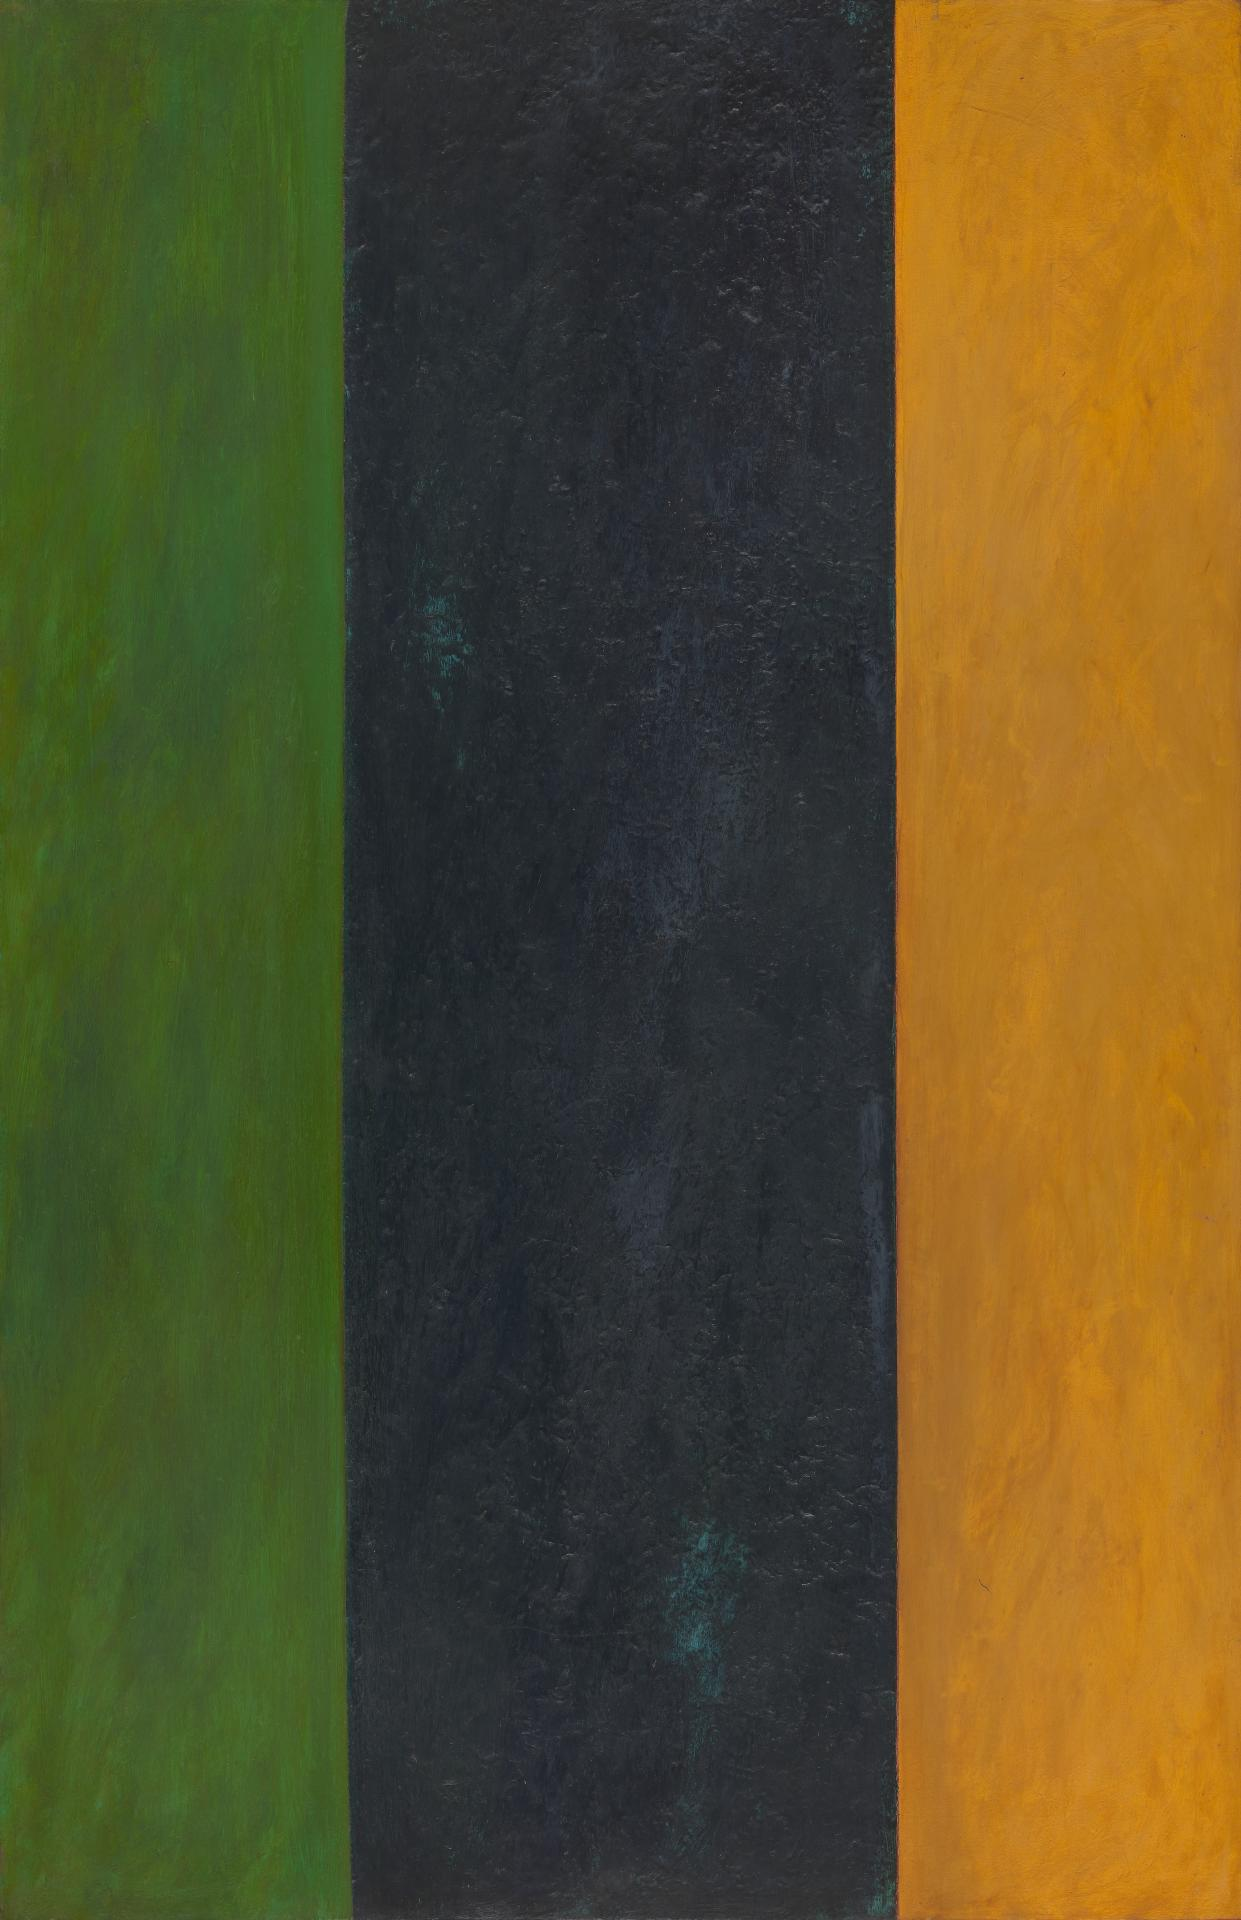 Untitled (Ochre, black, green)